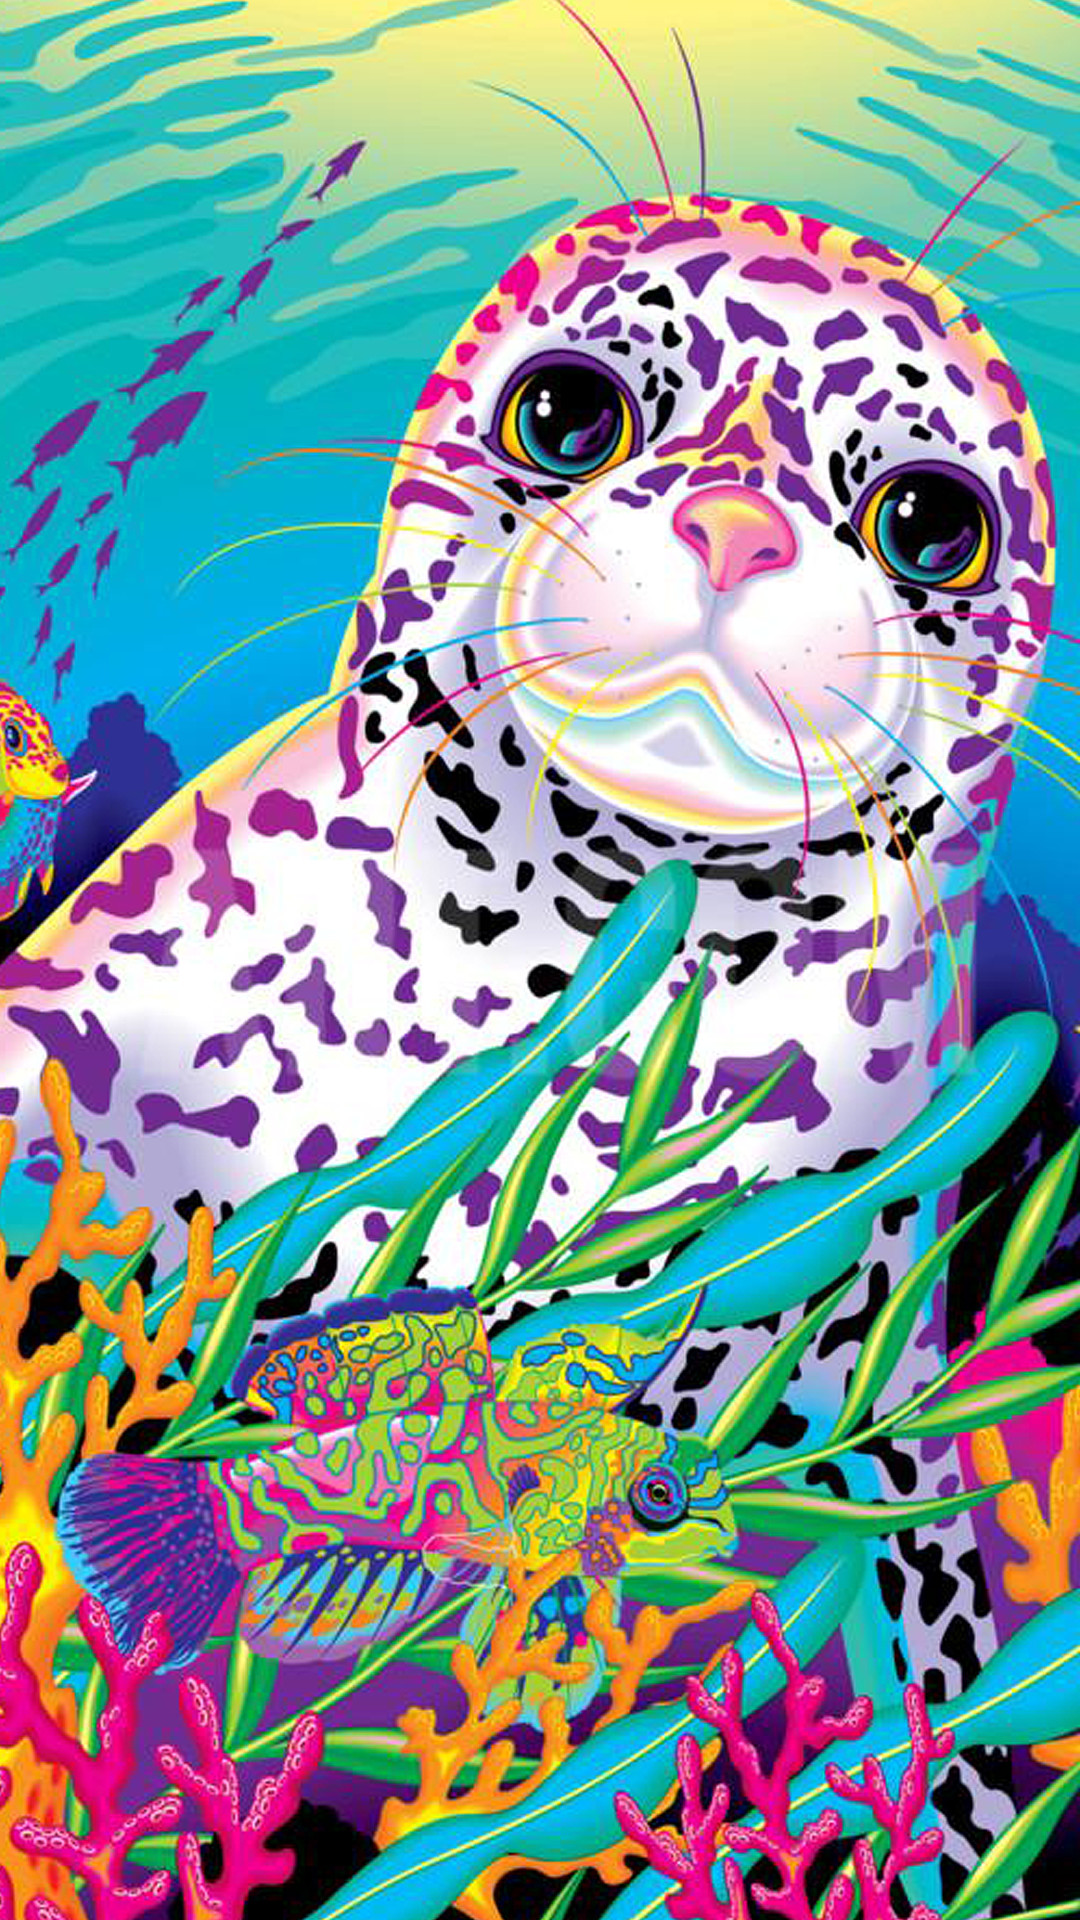 700 follower celebration Lisa Frank stock iPhone 6 and iPhone 6s wallpapers  Holy smokes, you